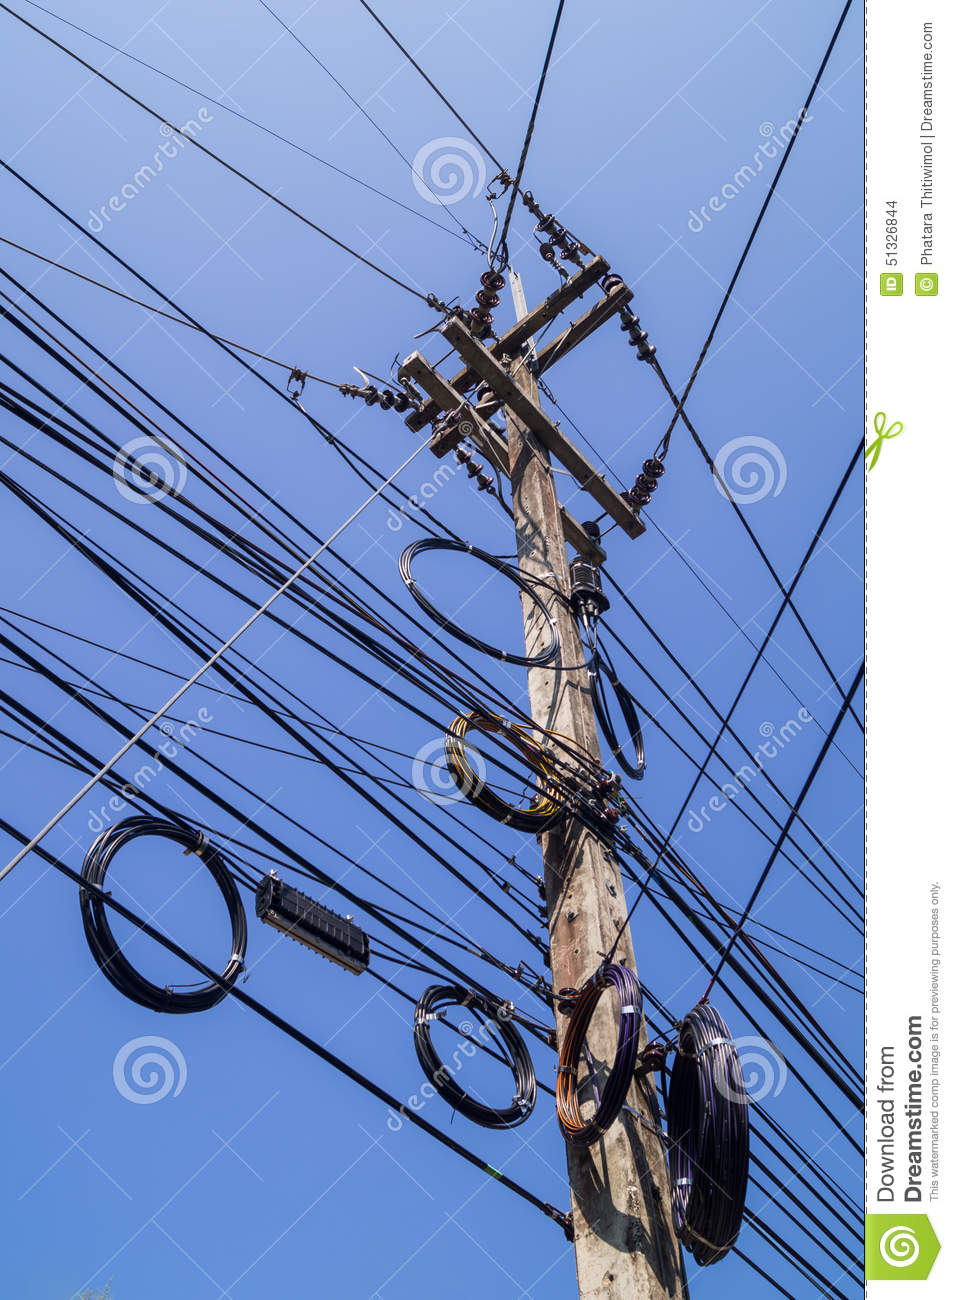 cartoon messy wiring wire electric messy stock photography | cartoondealer.com ... #9